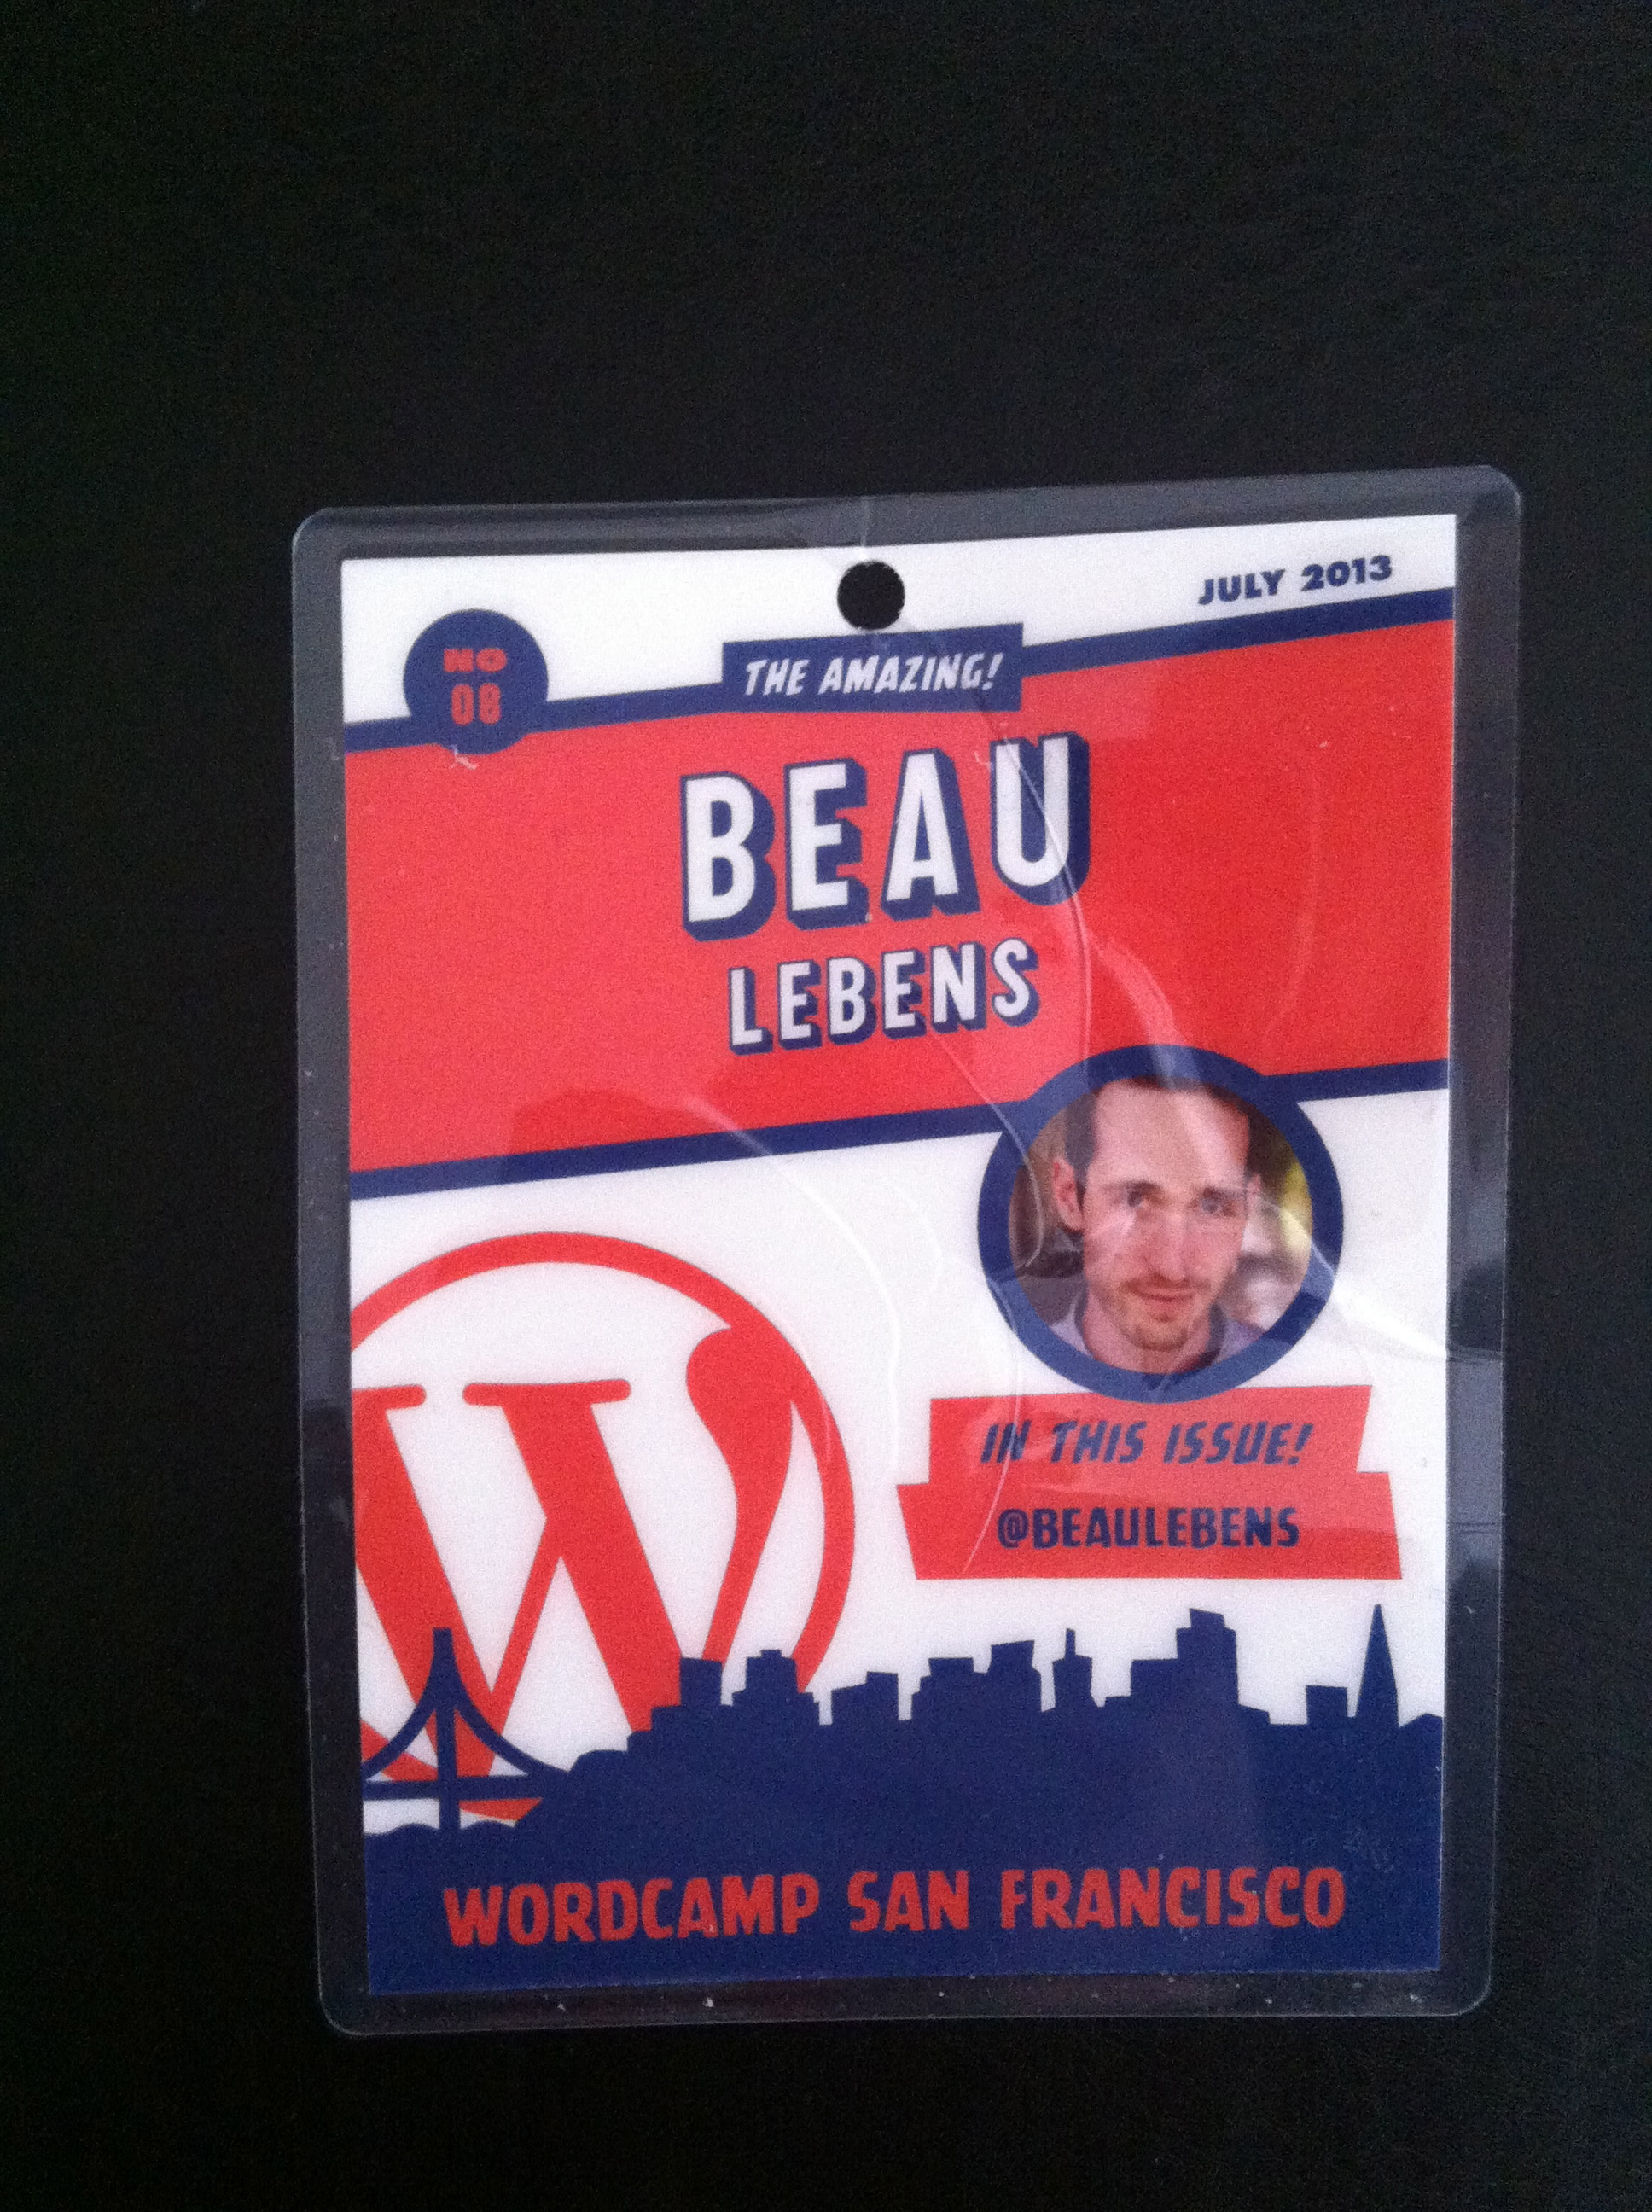 WordCampSF, 2013